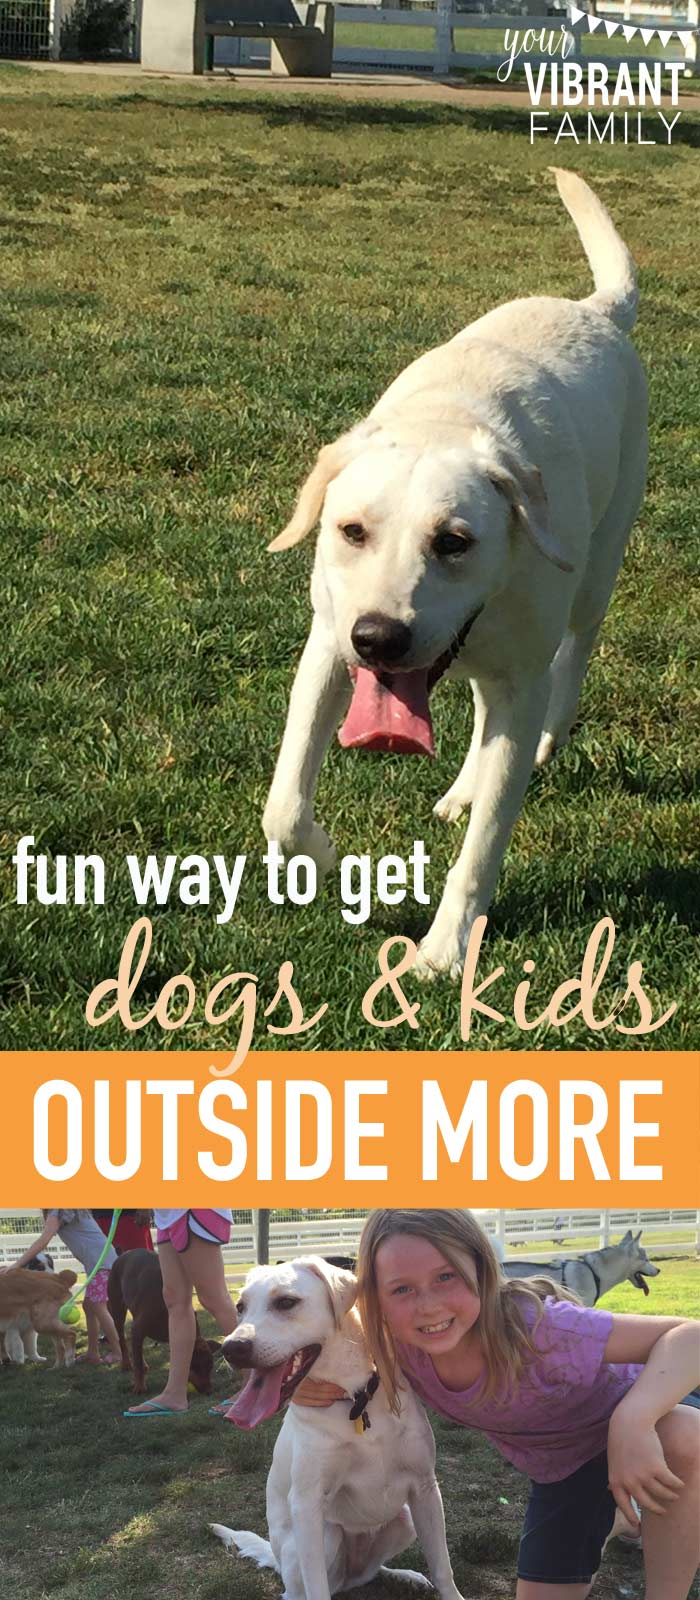 Summertime is great time to get outside and have fun with your kids (yes, even your four-legged ones)! Dogs love the great outdoors and are always up for playtime, right?! We tried this with our family and couldn't believe how much fun we had!